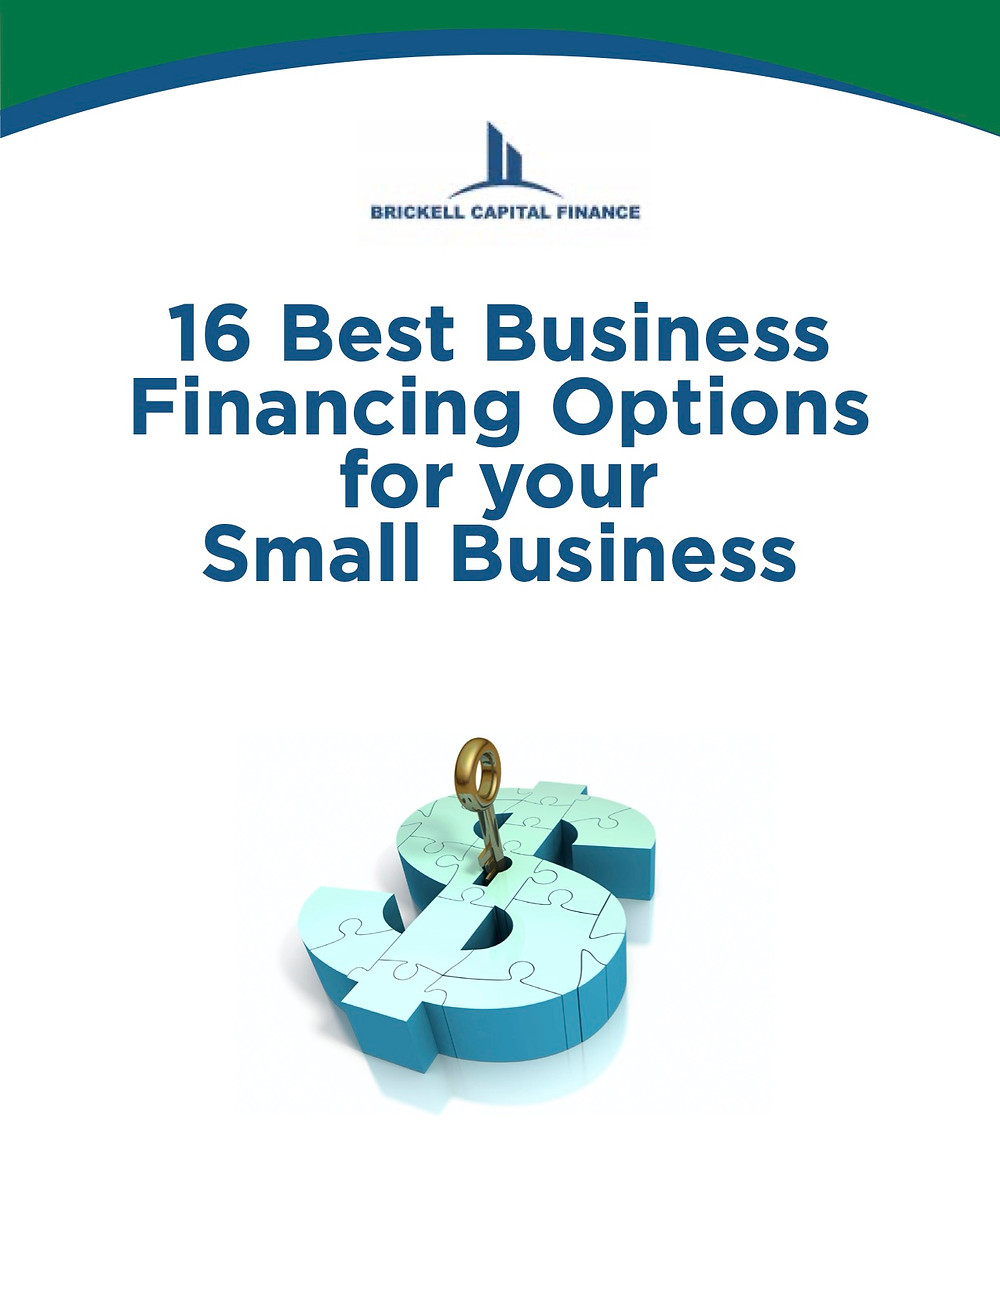 16 Best financing options for small businesses